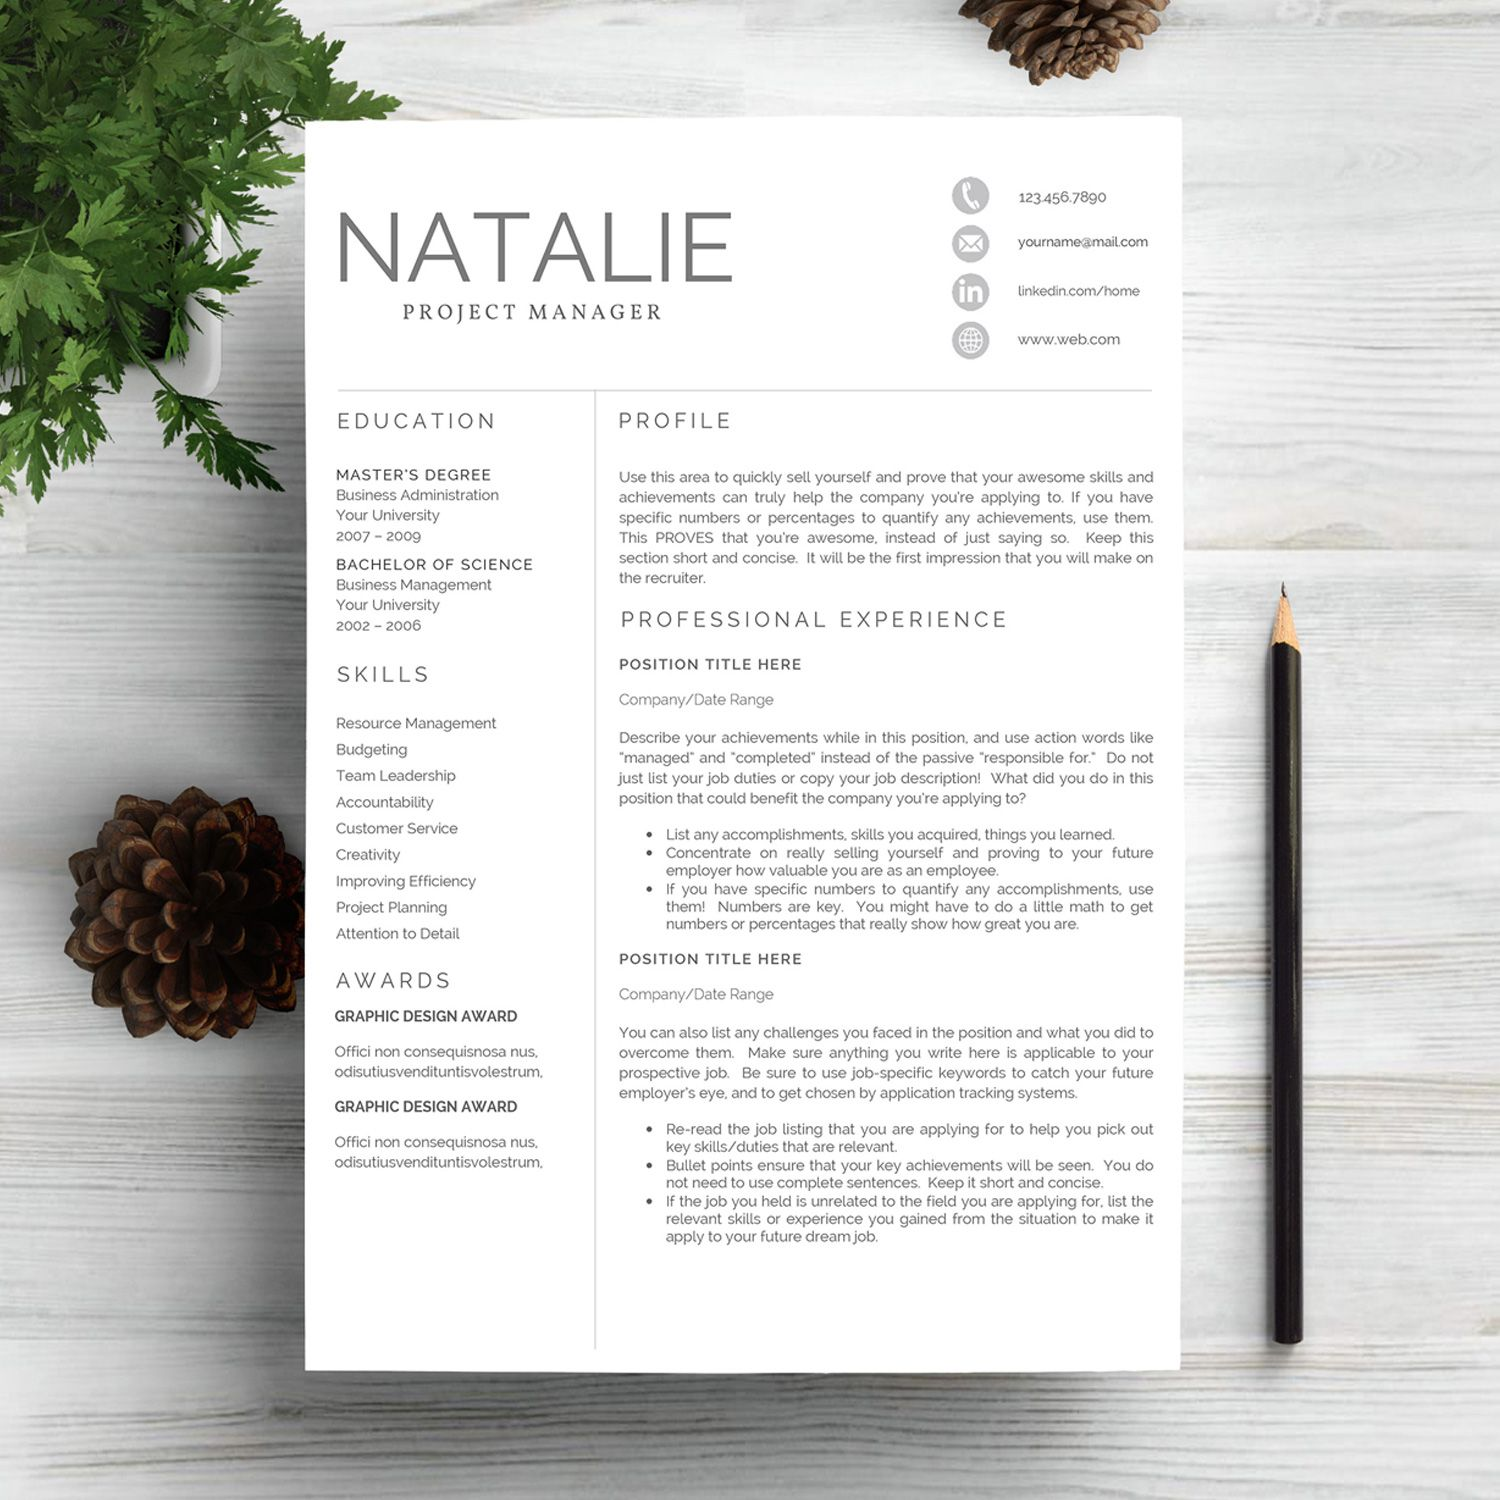 Professional Resume Template CV by Indograph on @creativemarket | R ...